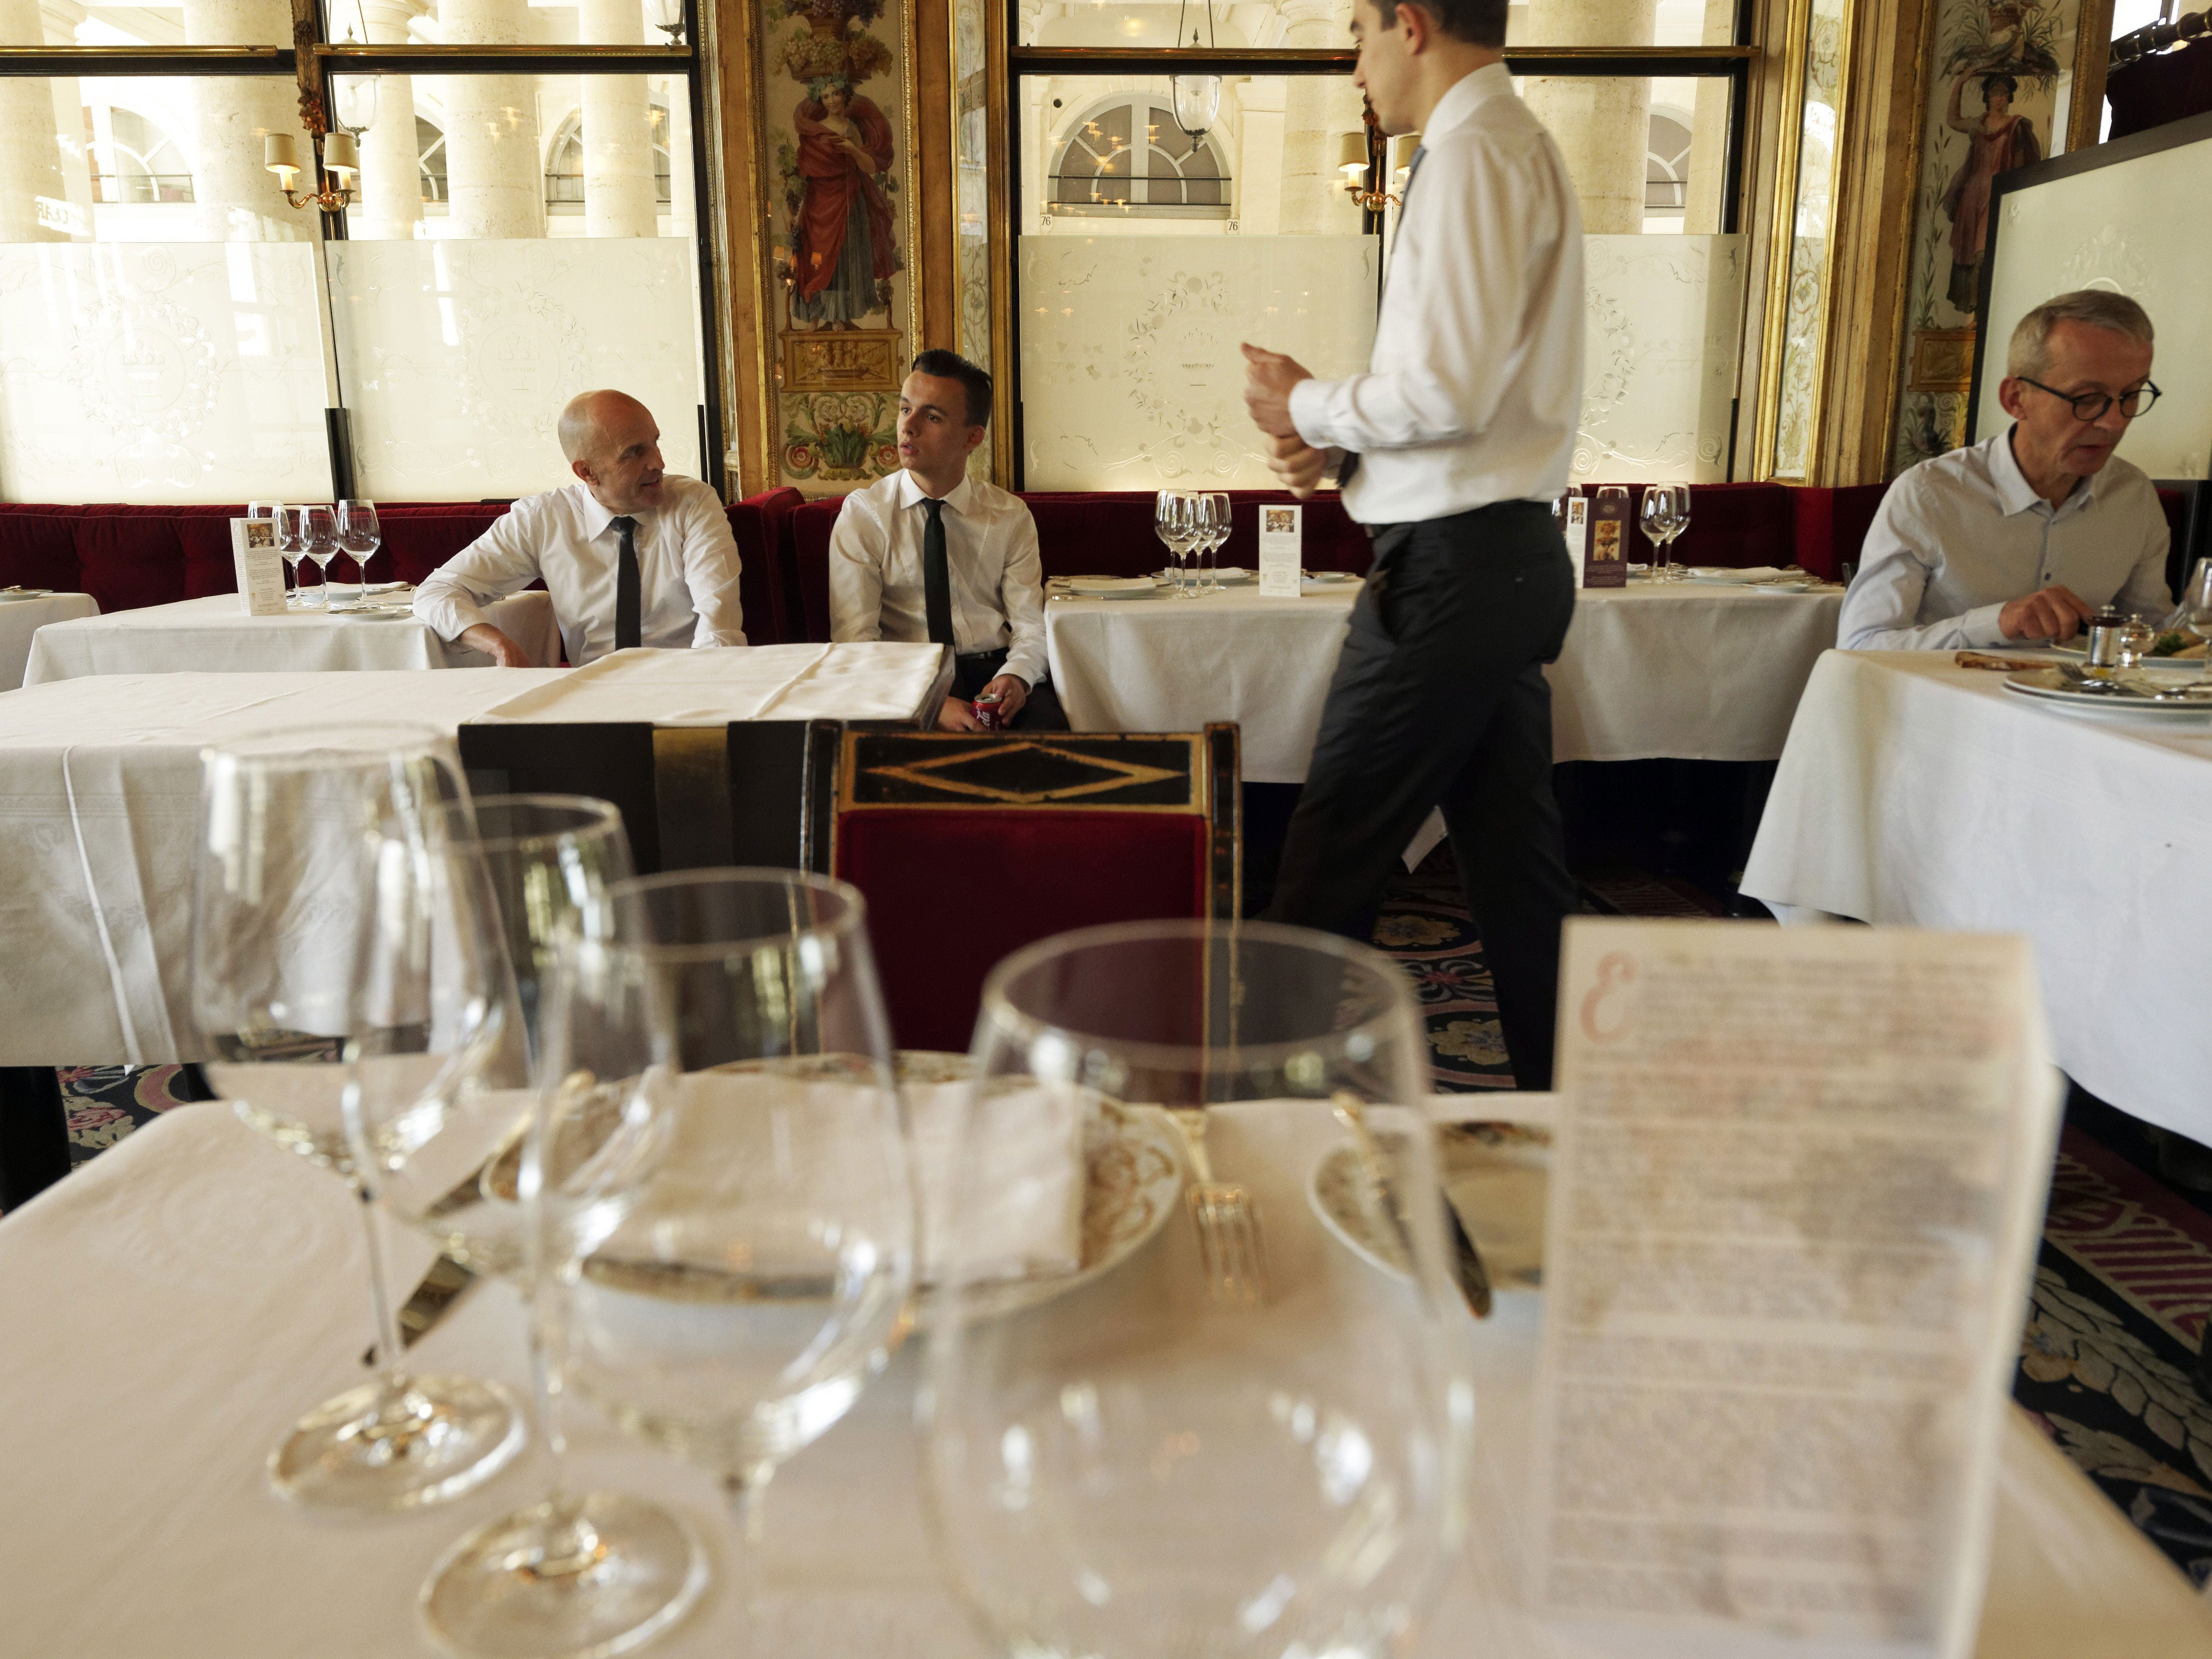 The annoying restaurant trend ruining our dining experience